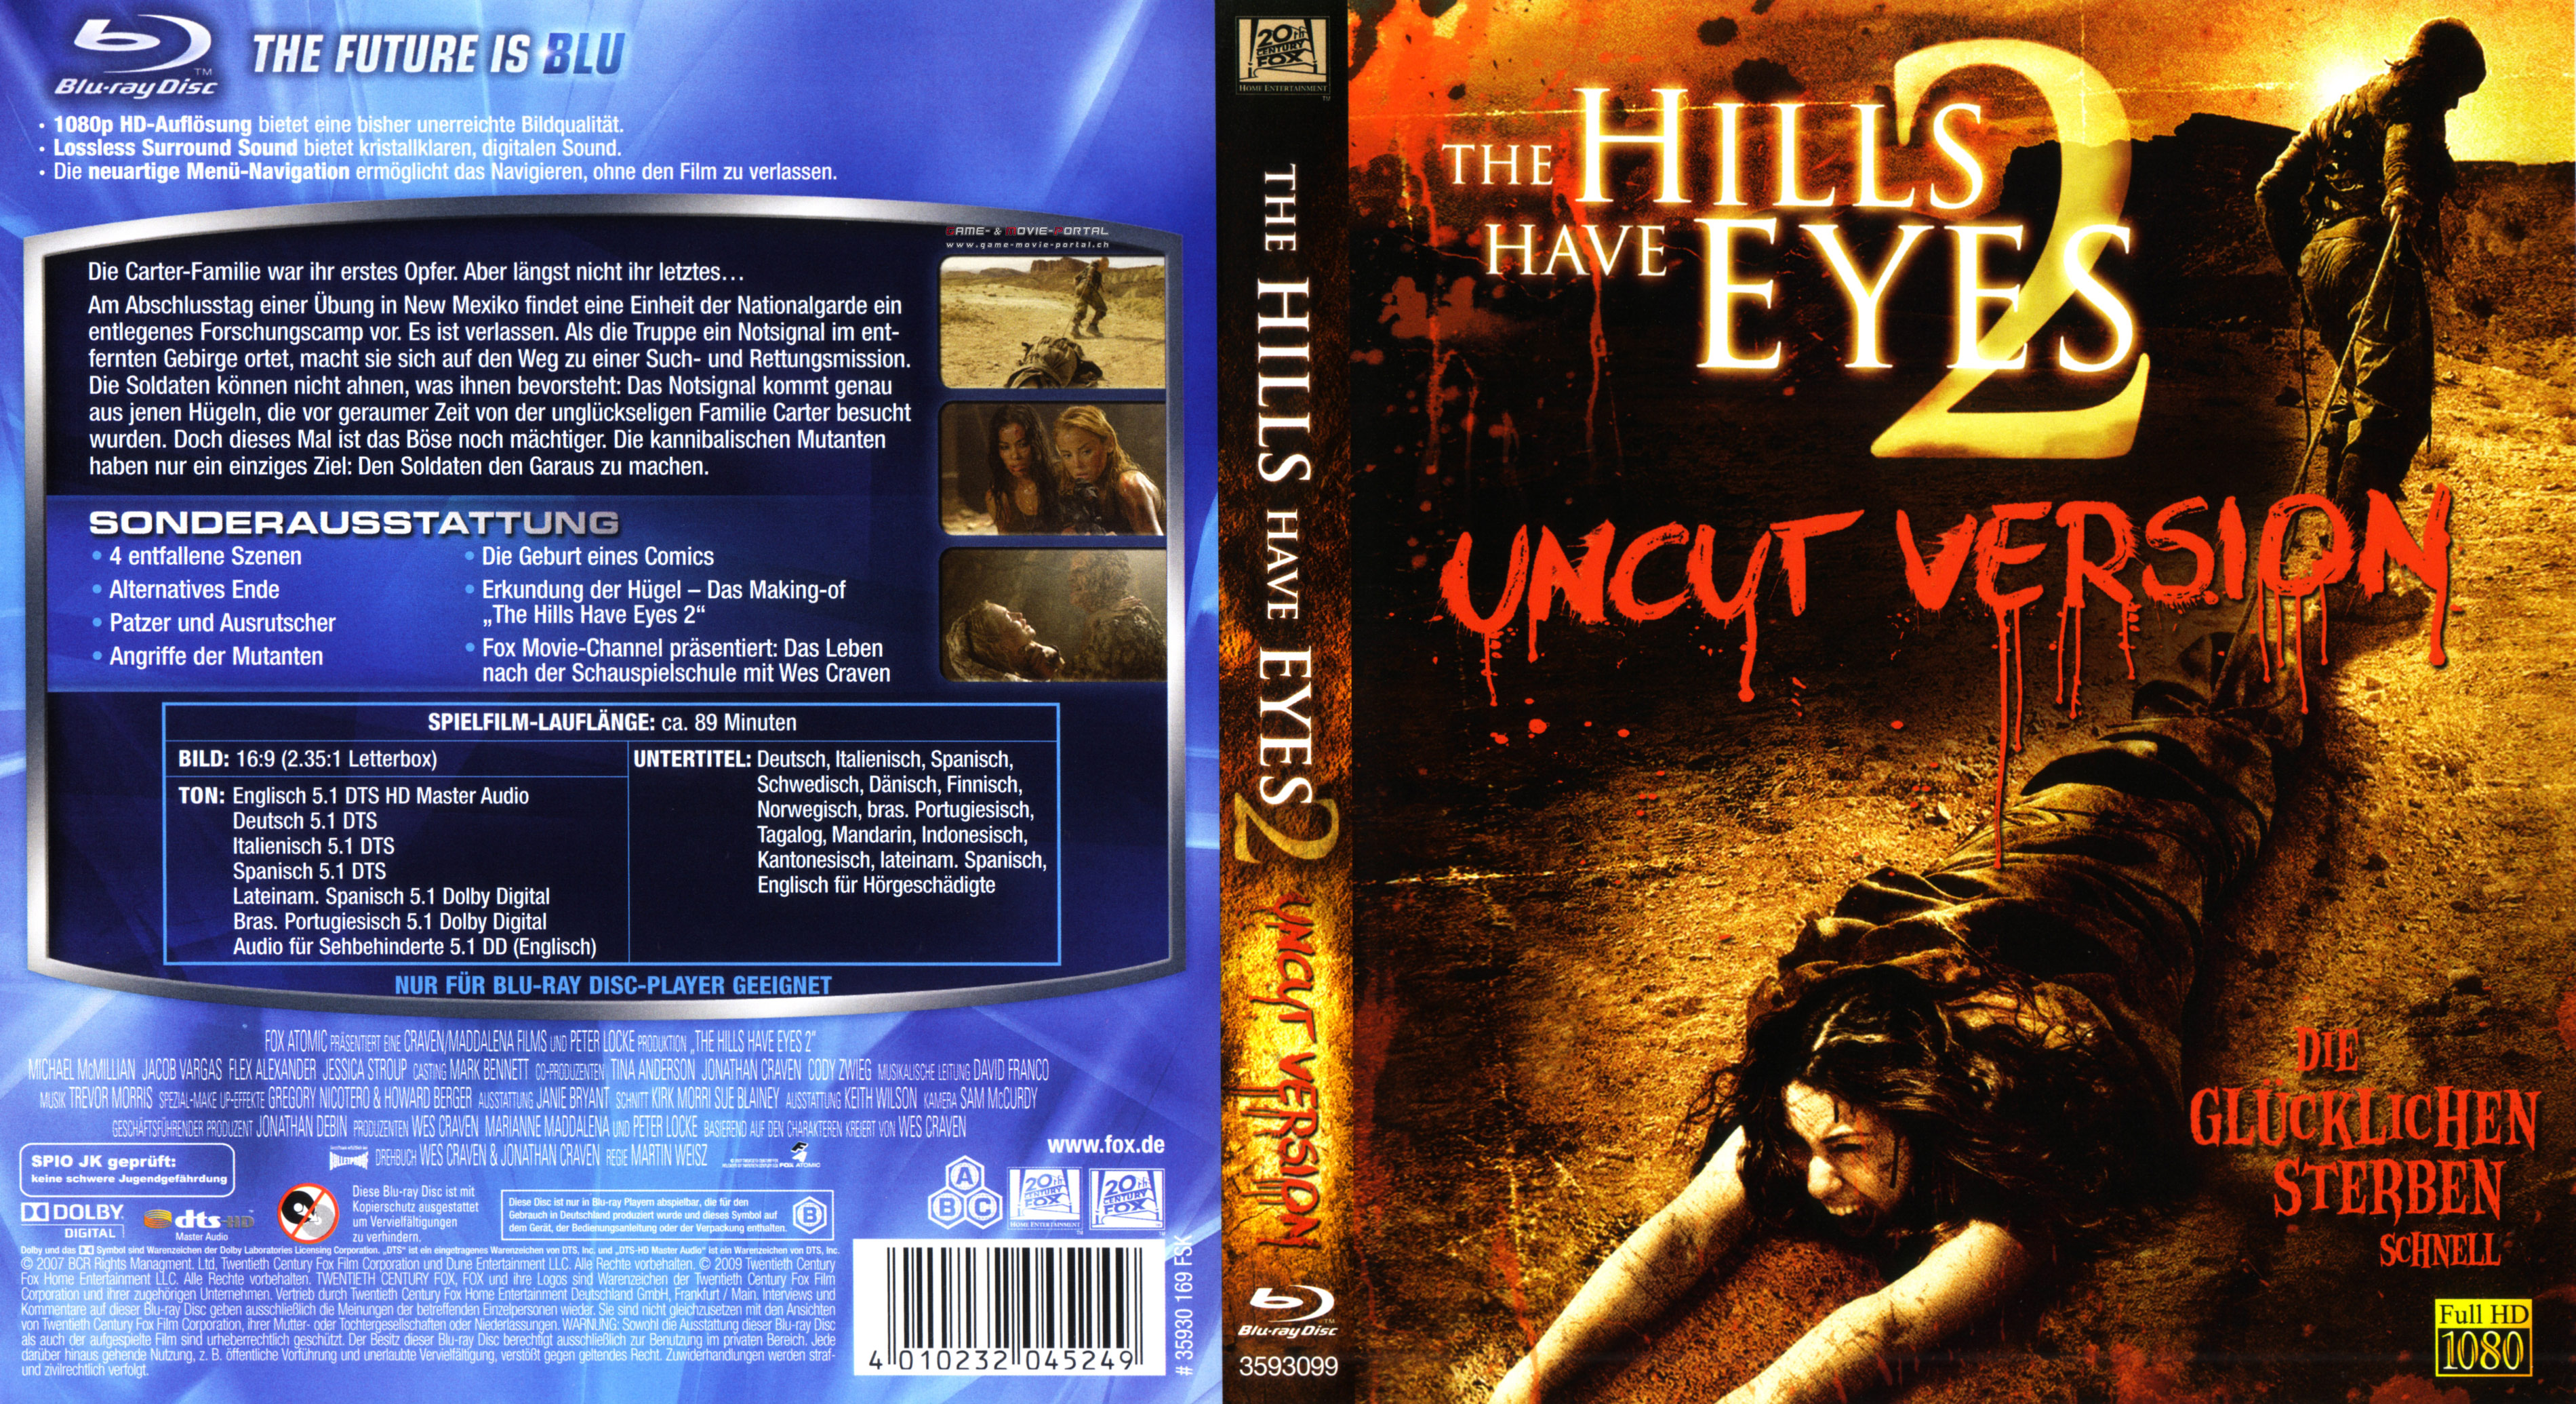 the hills have eyes unrated collection blu-ray